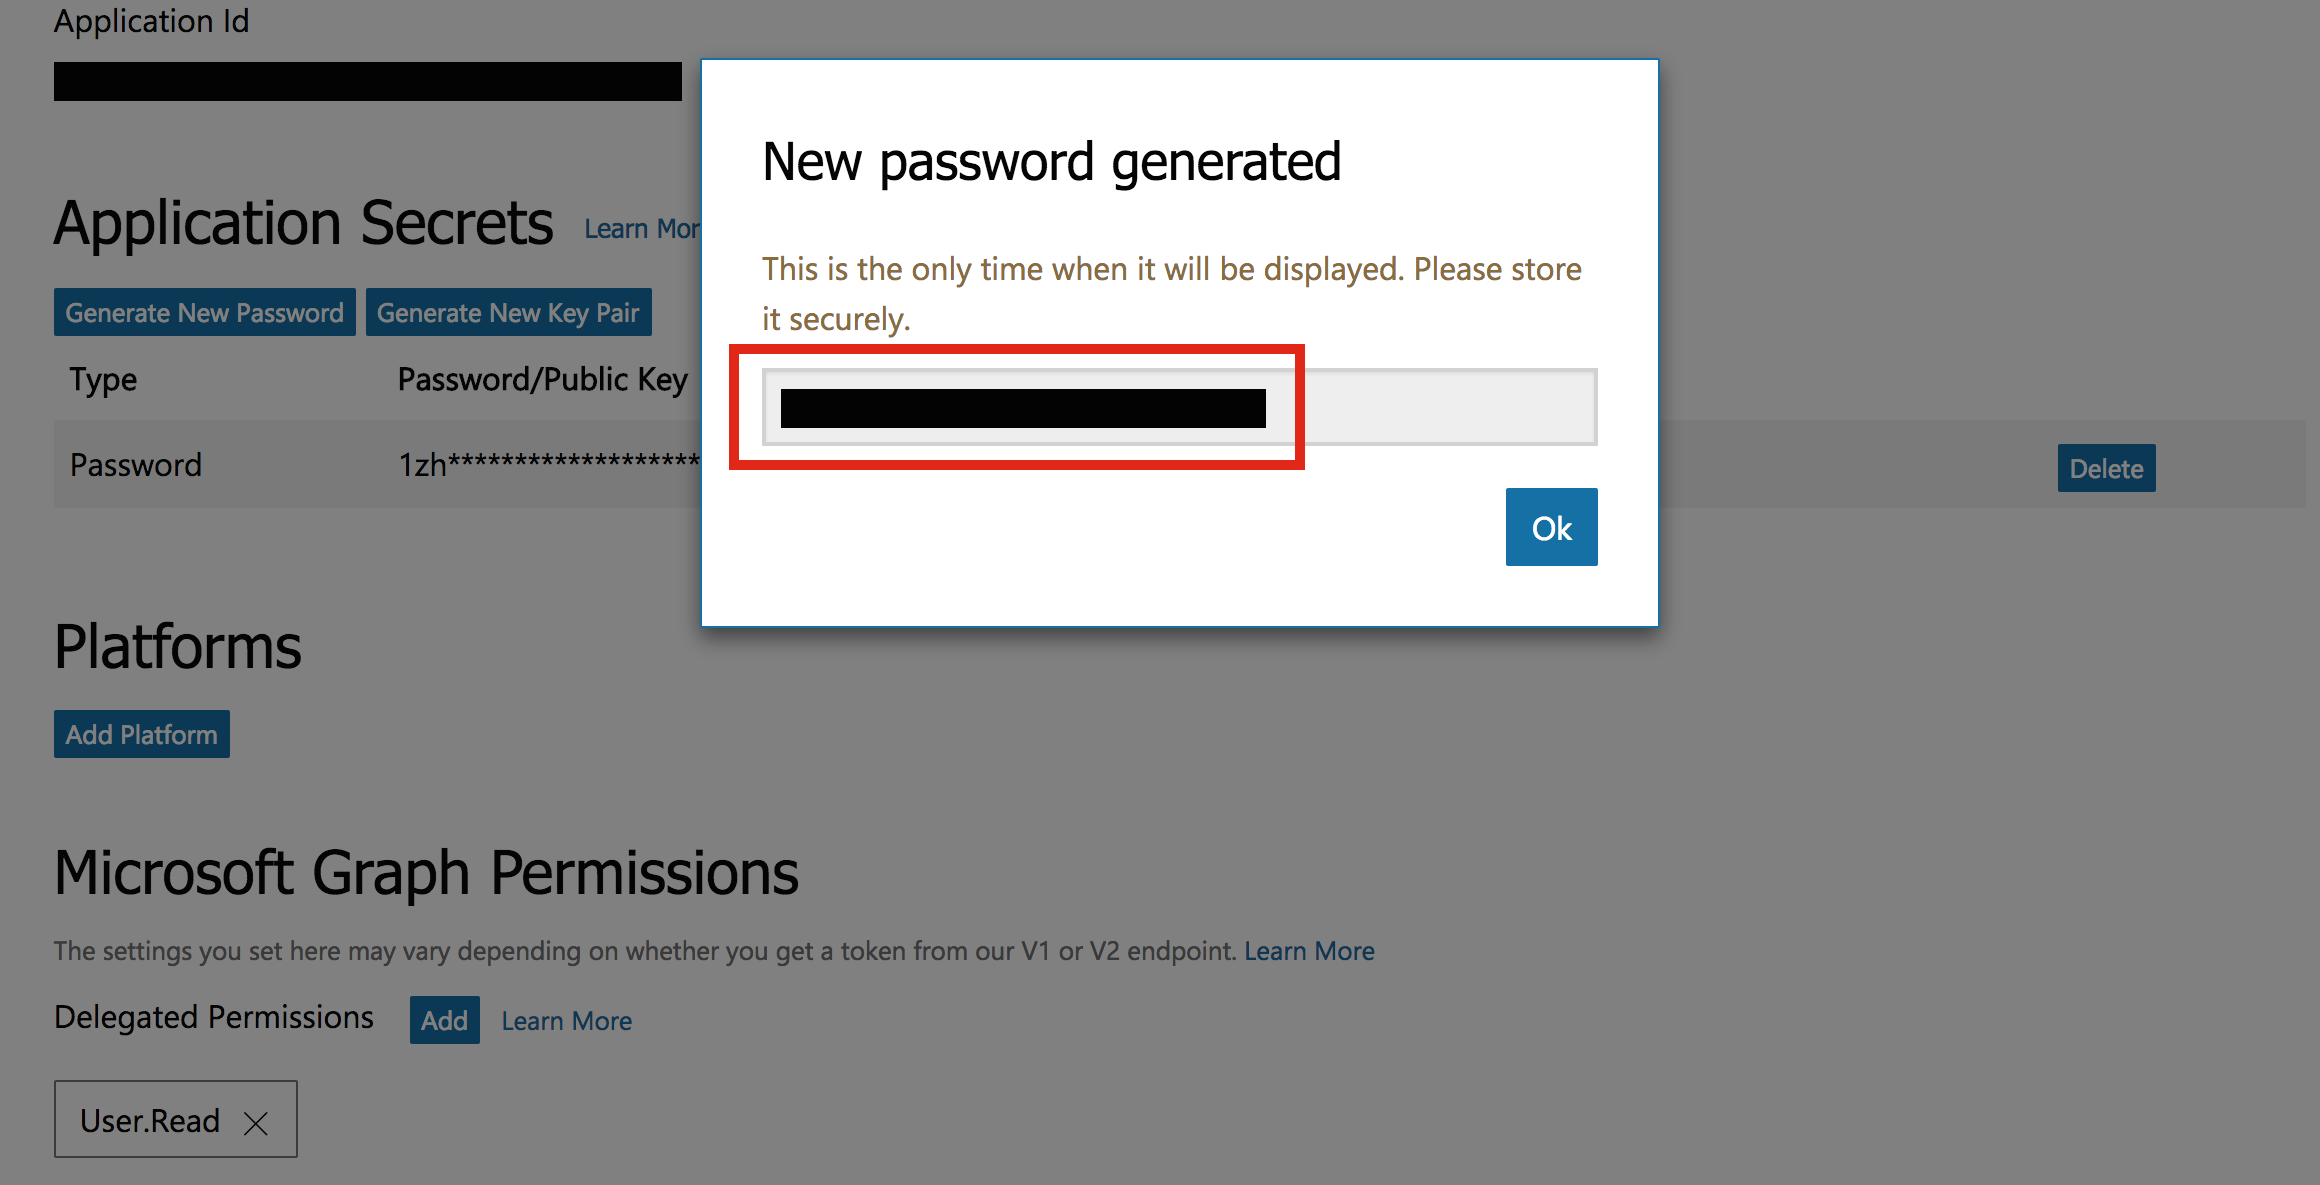 How can I get my Microsoft account Client ID and Client Secret key